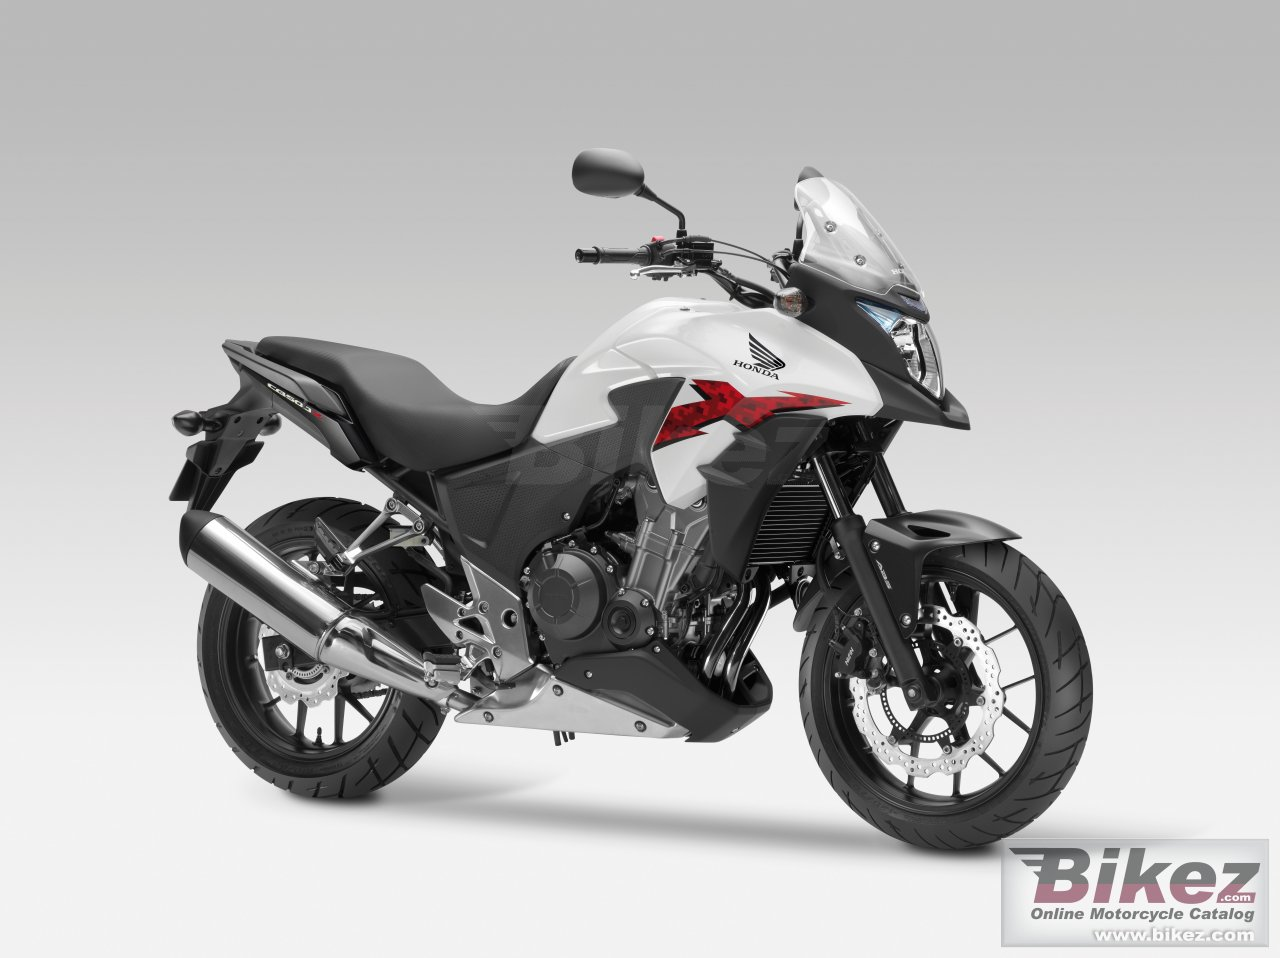 Big Honda cb500x picture and wallpaper from Bikez.com